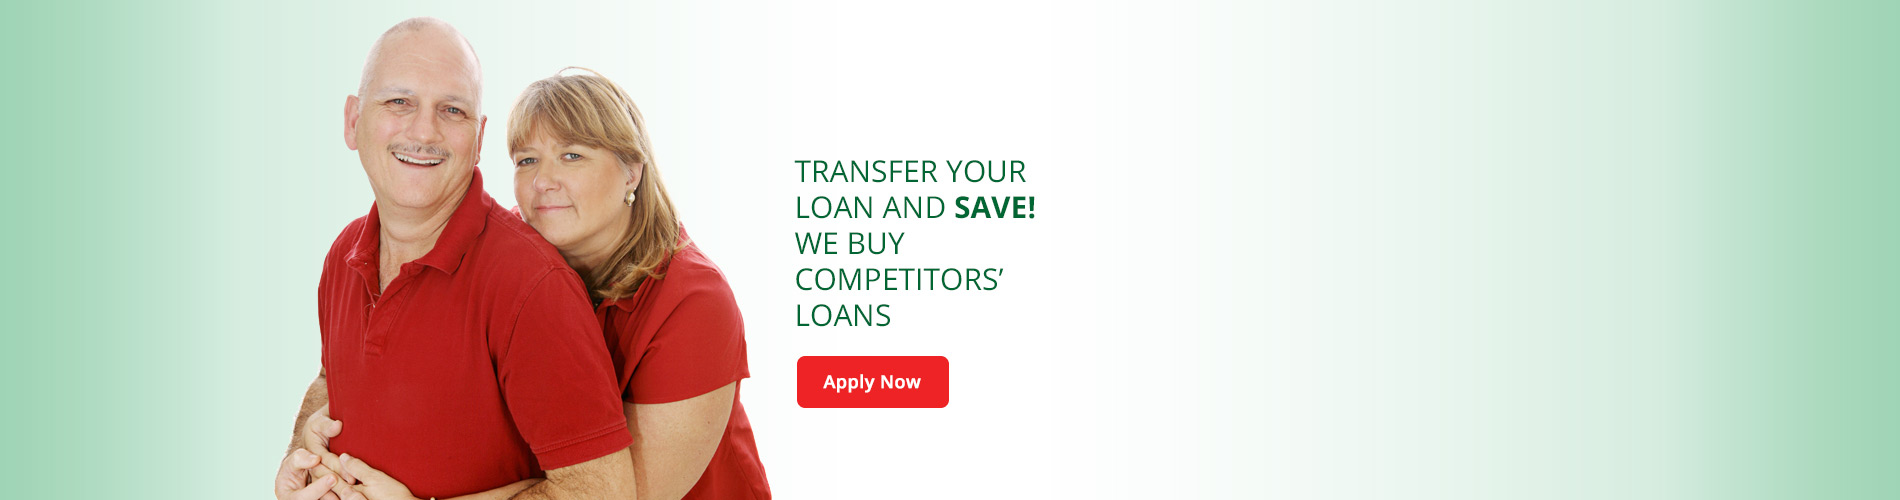 We buy competitors loans